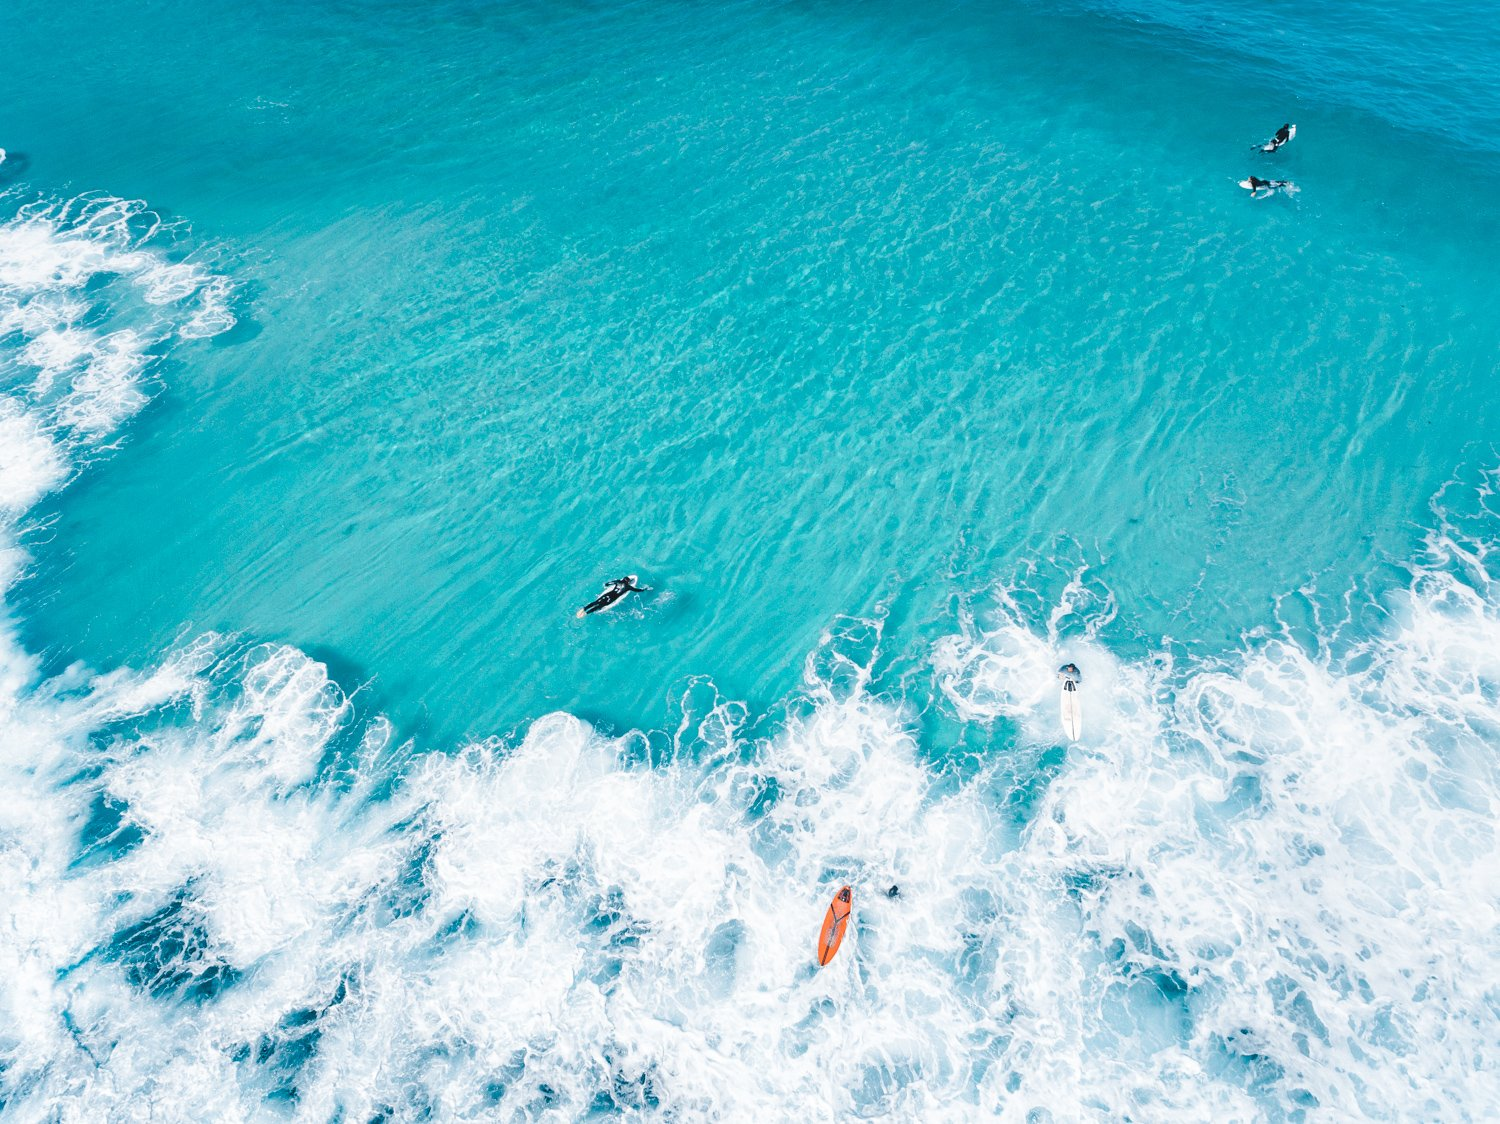 Aerial of surfers and waves in very blue waves in Cape Town